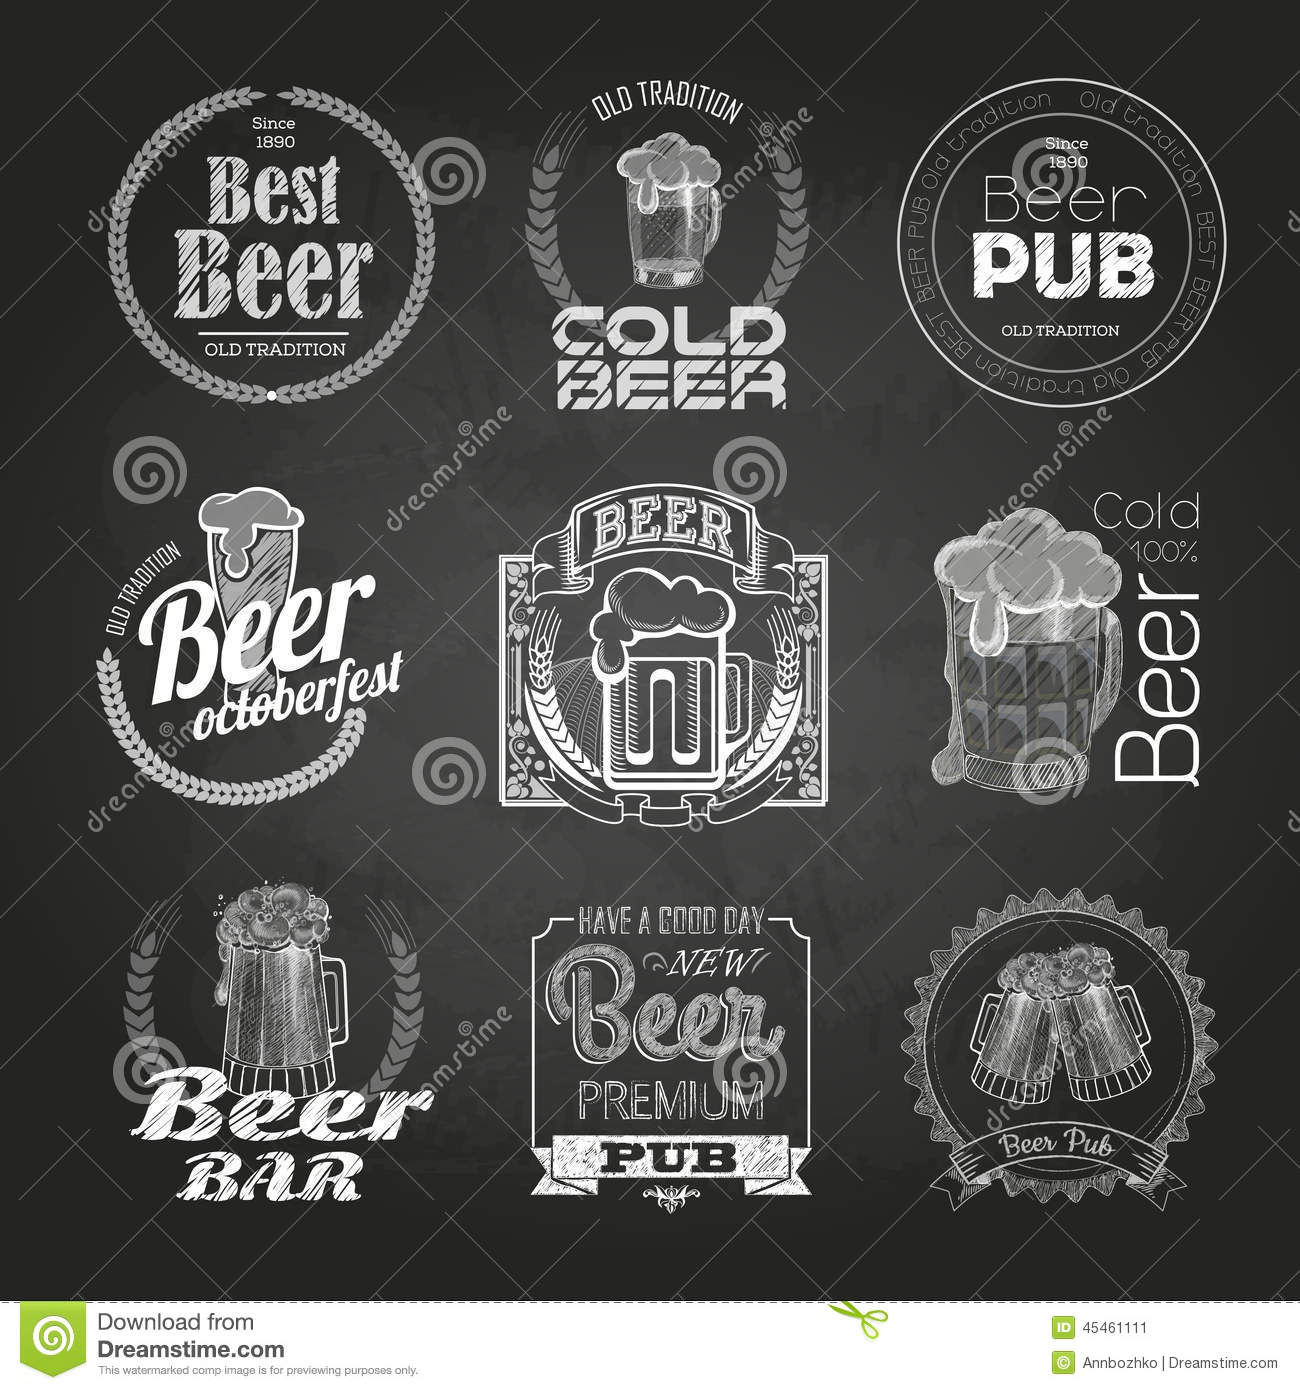 how to draw southwark beer signs